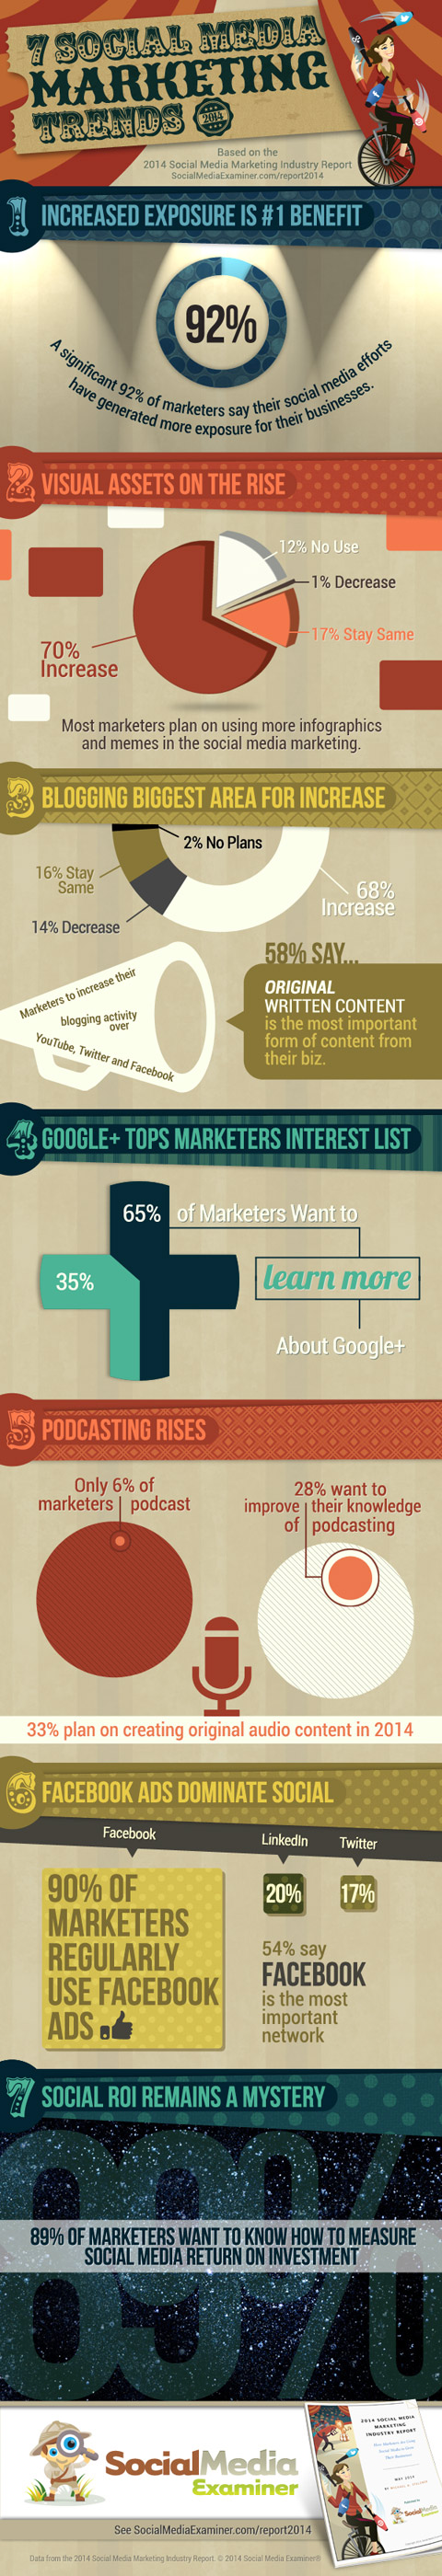 7 #SocialMedia Trends for Marketers: #infographic #marketing